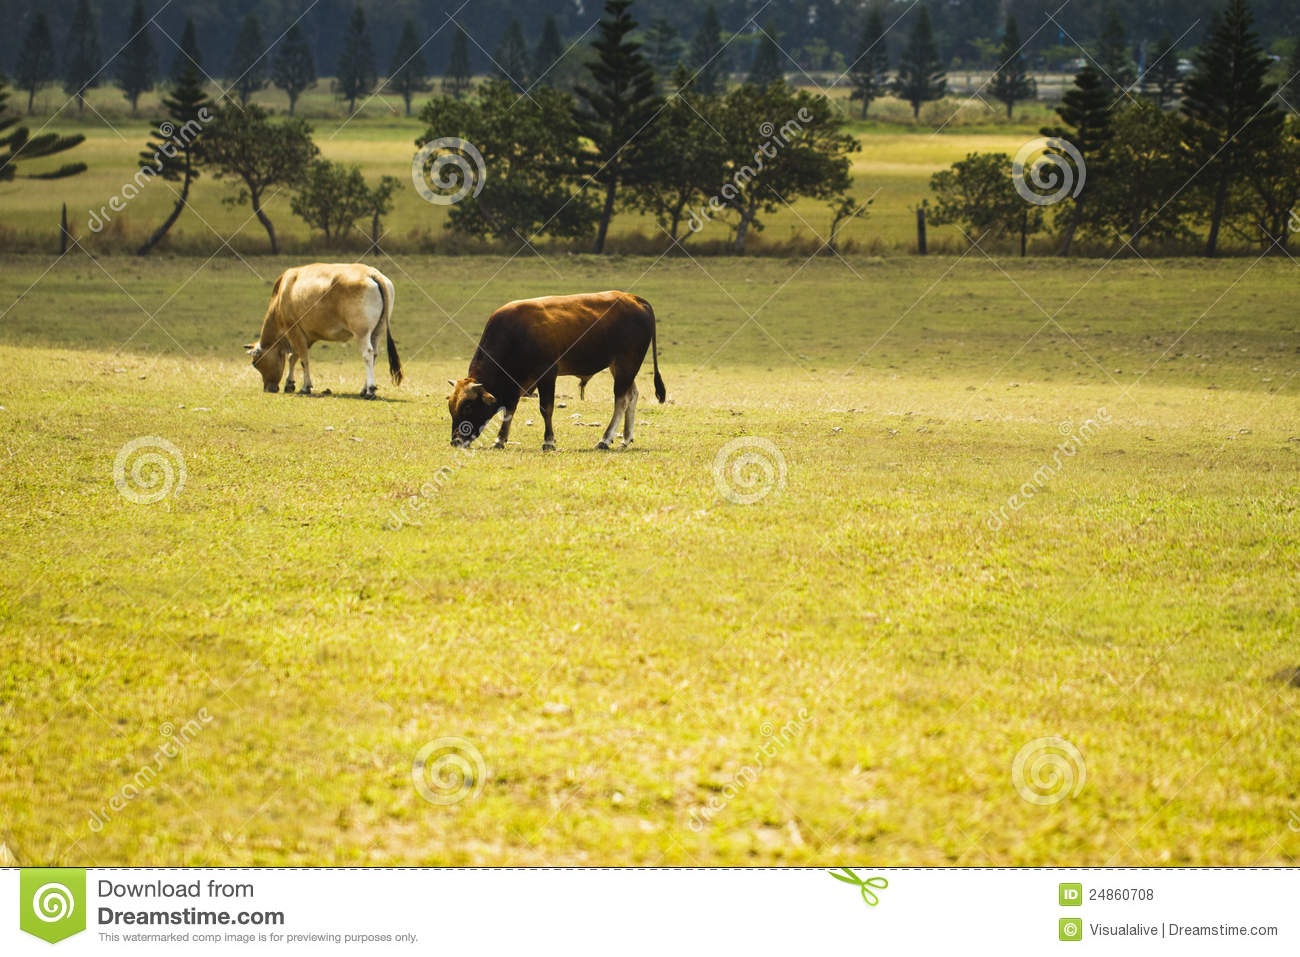 Cattle In Yards Royalty Free Stock Photos - Image: 24860708